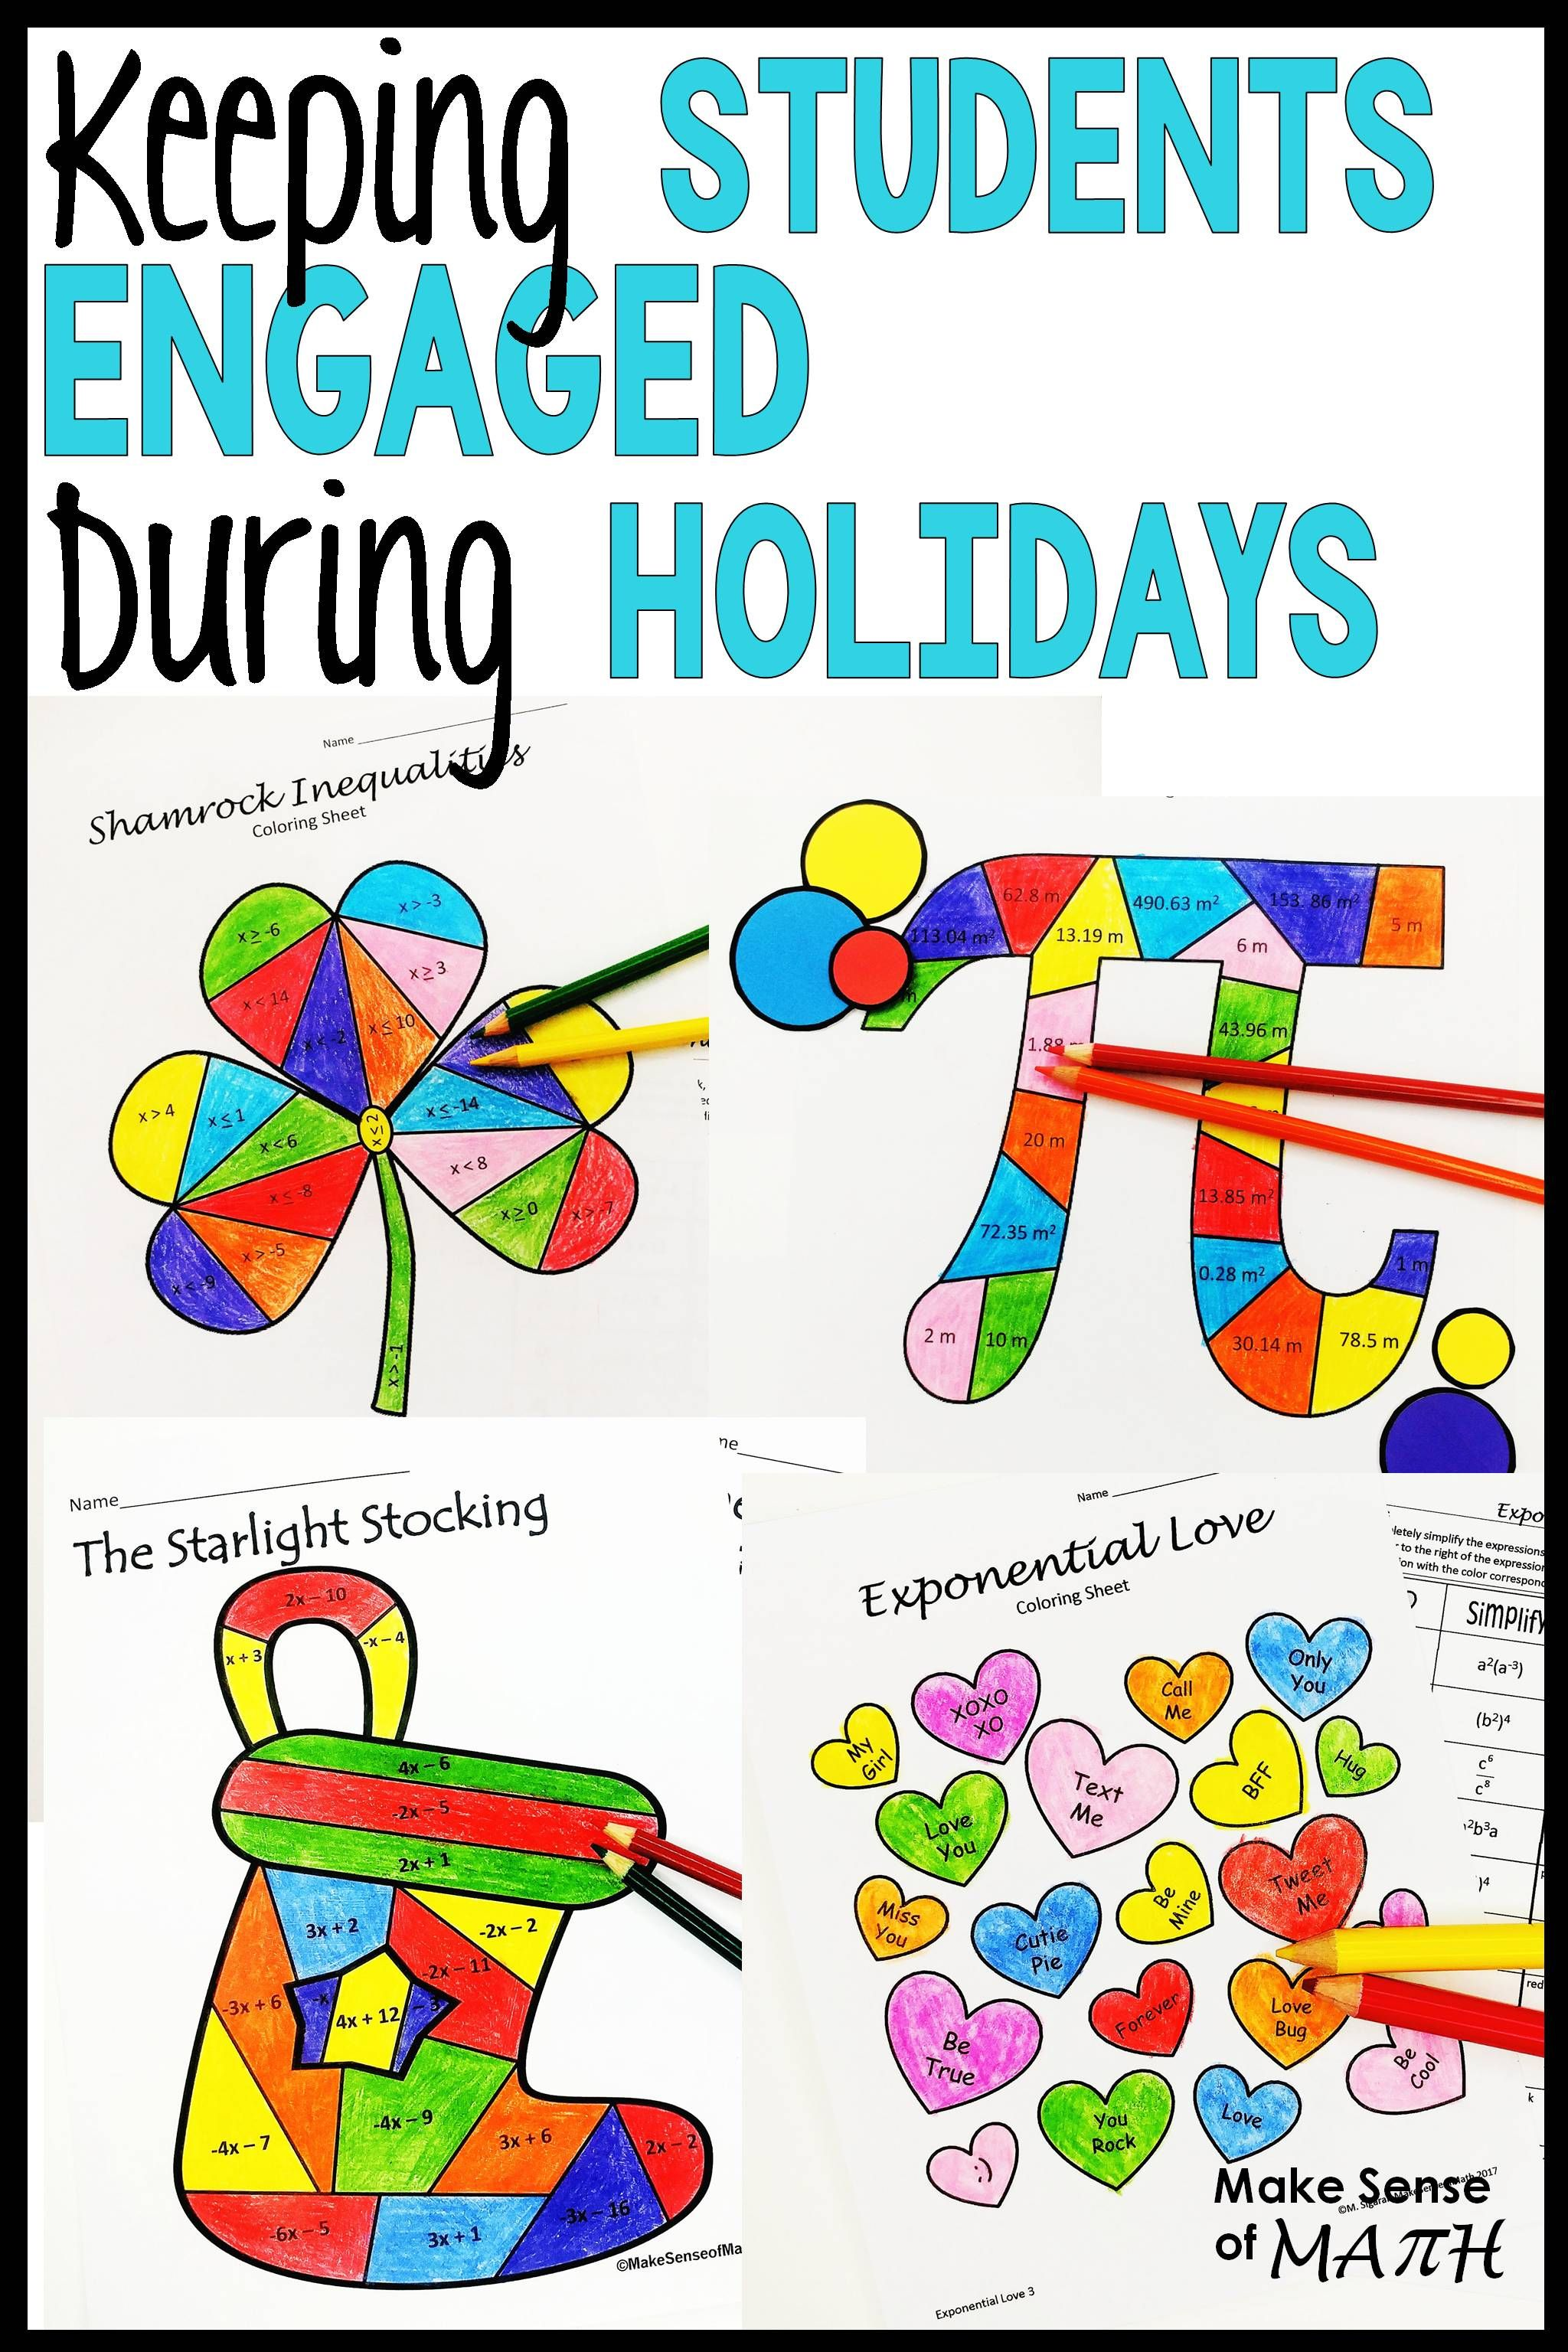 How To Teach Effectively During Holidays